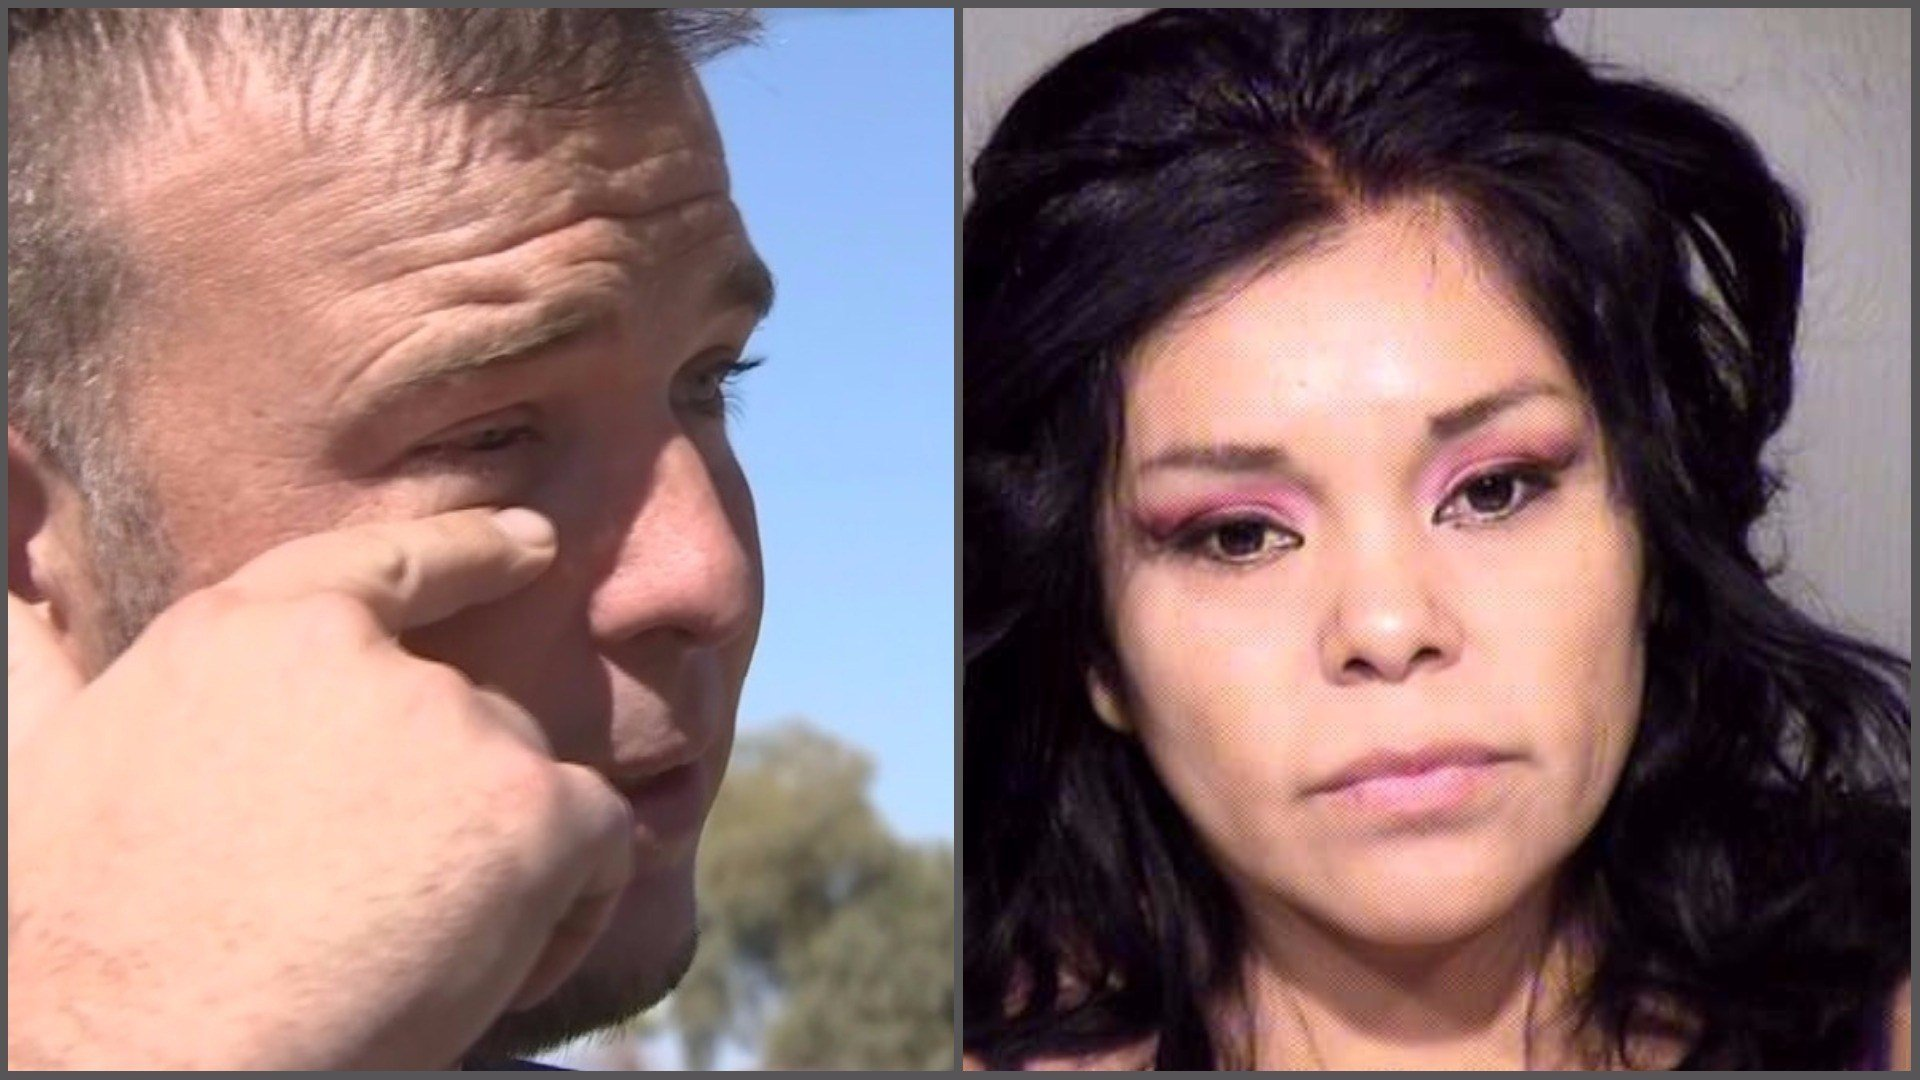 Aaron Walters said he thought he lost an eye. Kris Loring is accused of attacking him with a stiletto. (Source: 3TV/CBS 5 and Maricopa County Sheriiff's Office)